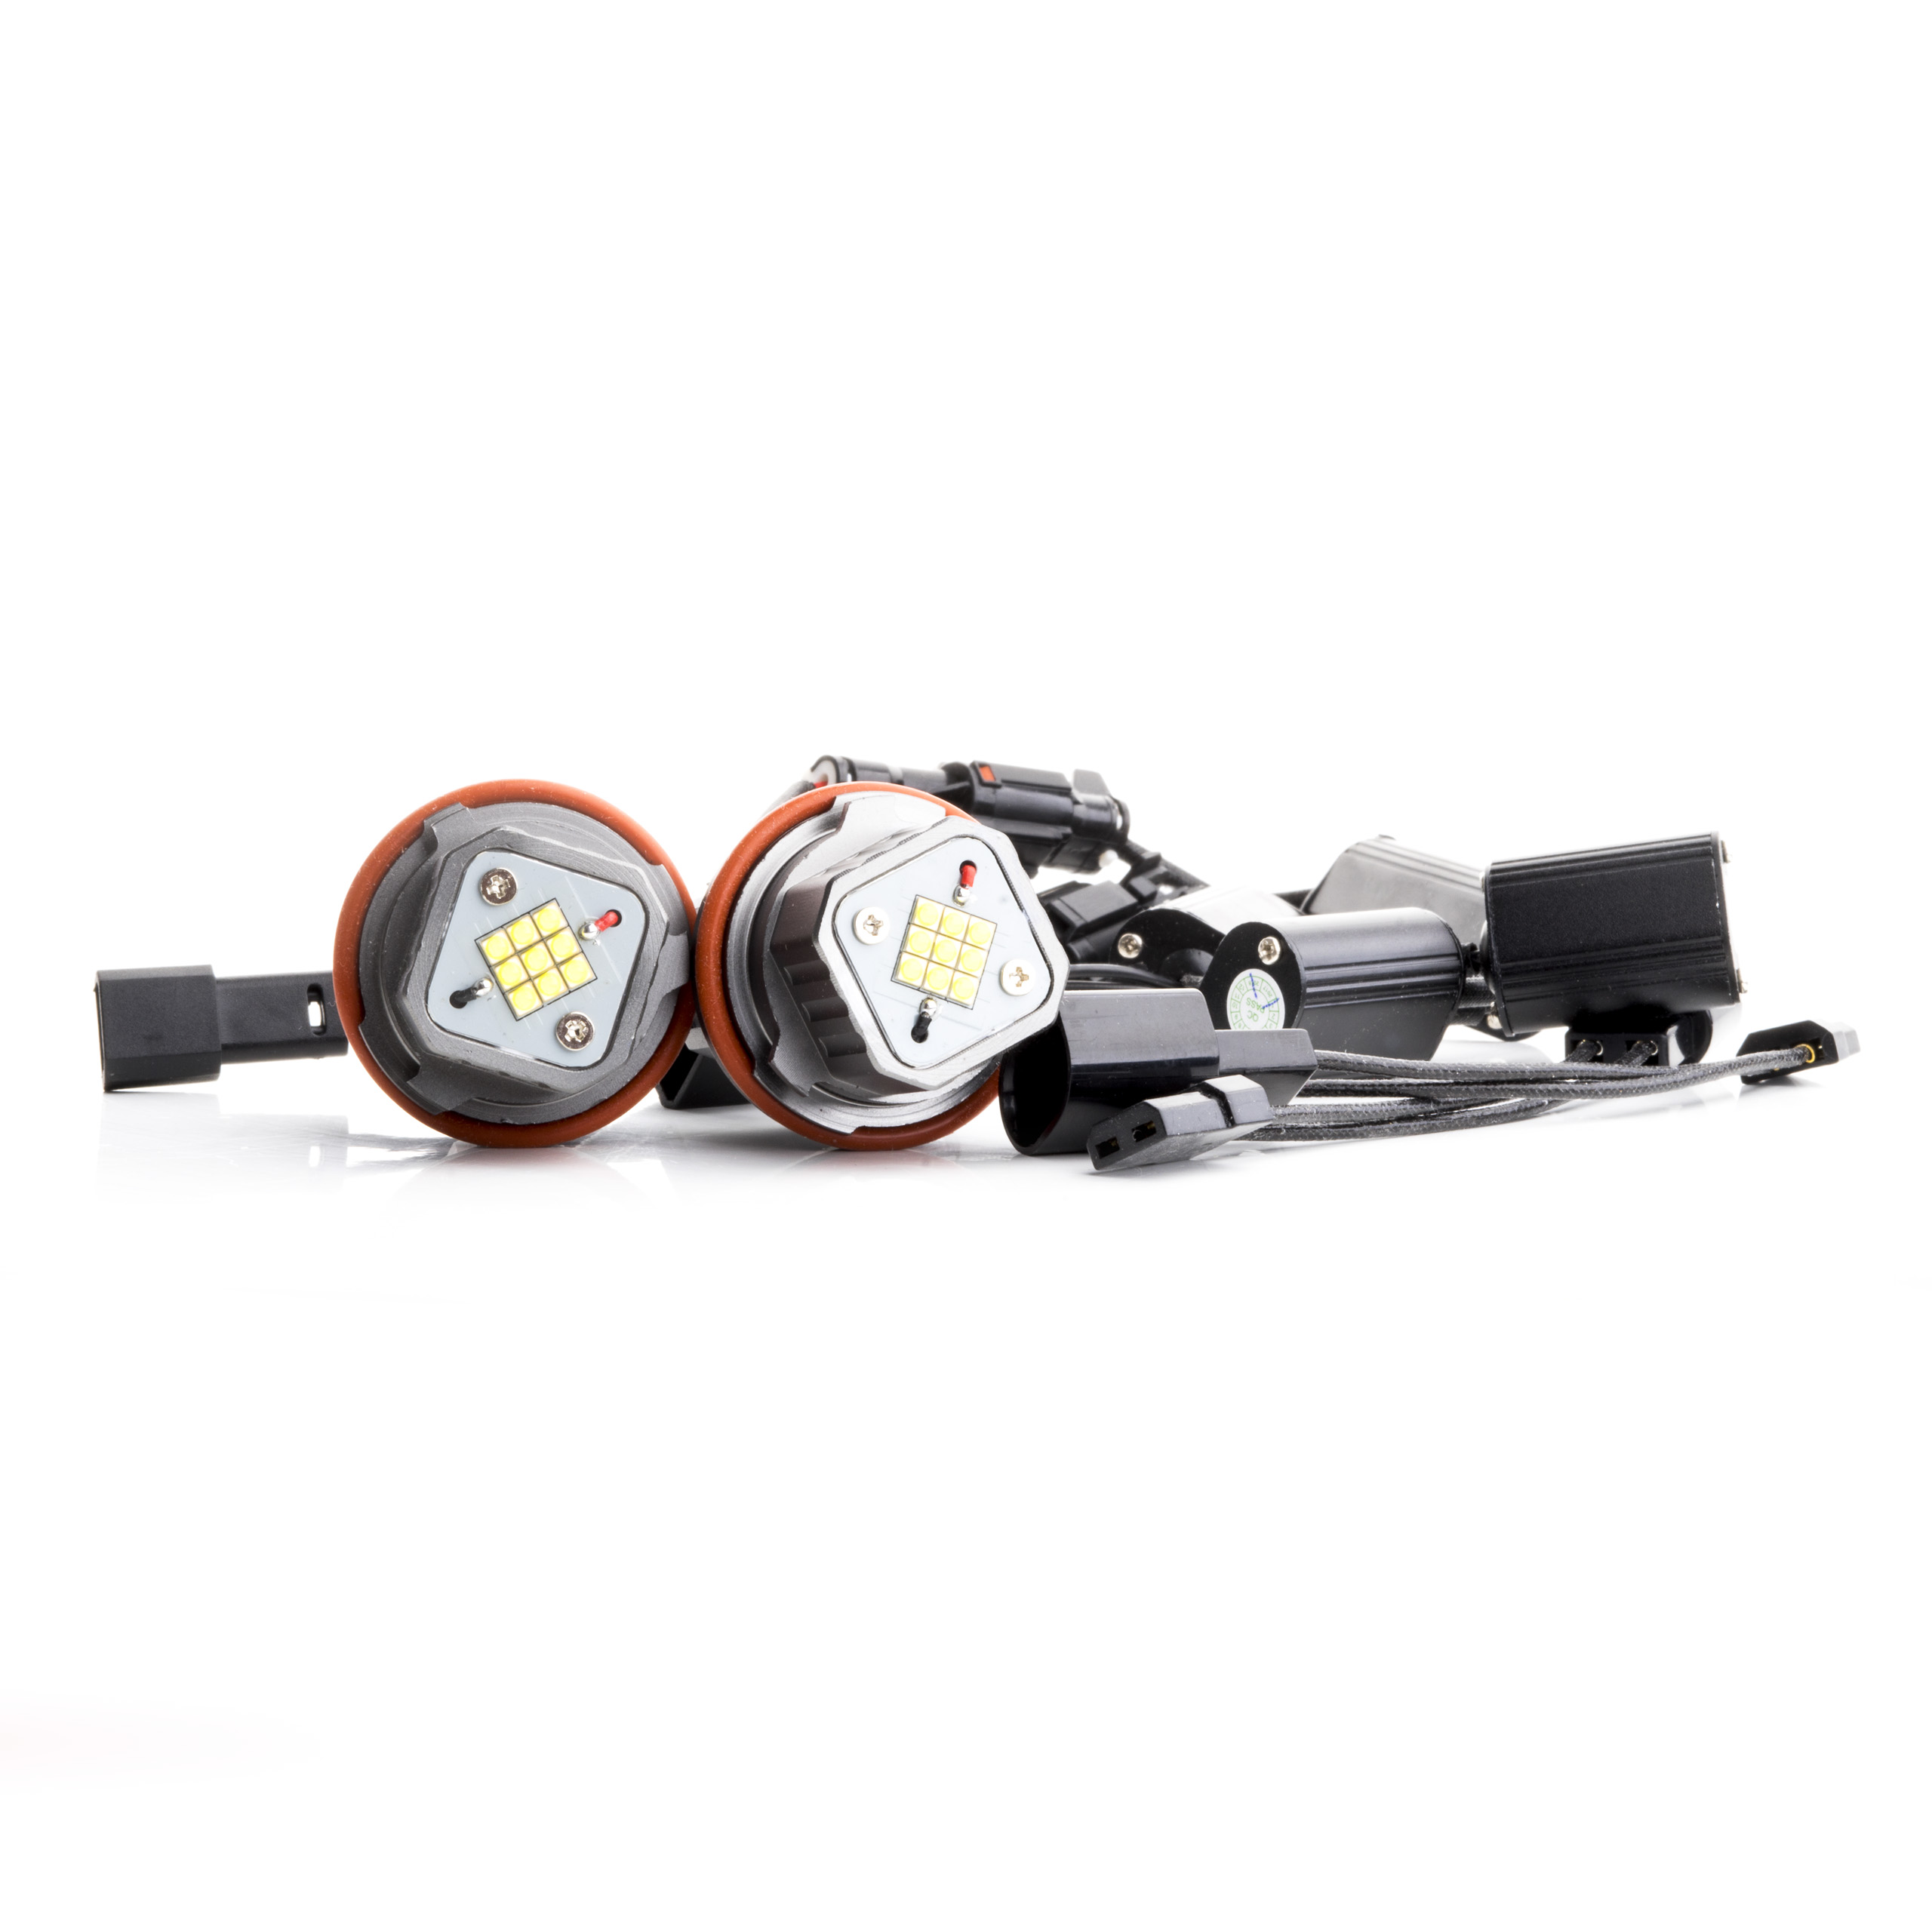 LED Markery 2 x 80W (OSRAM) do kroužků BMW 7 E65/E66 (2002-2008)